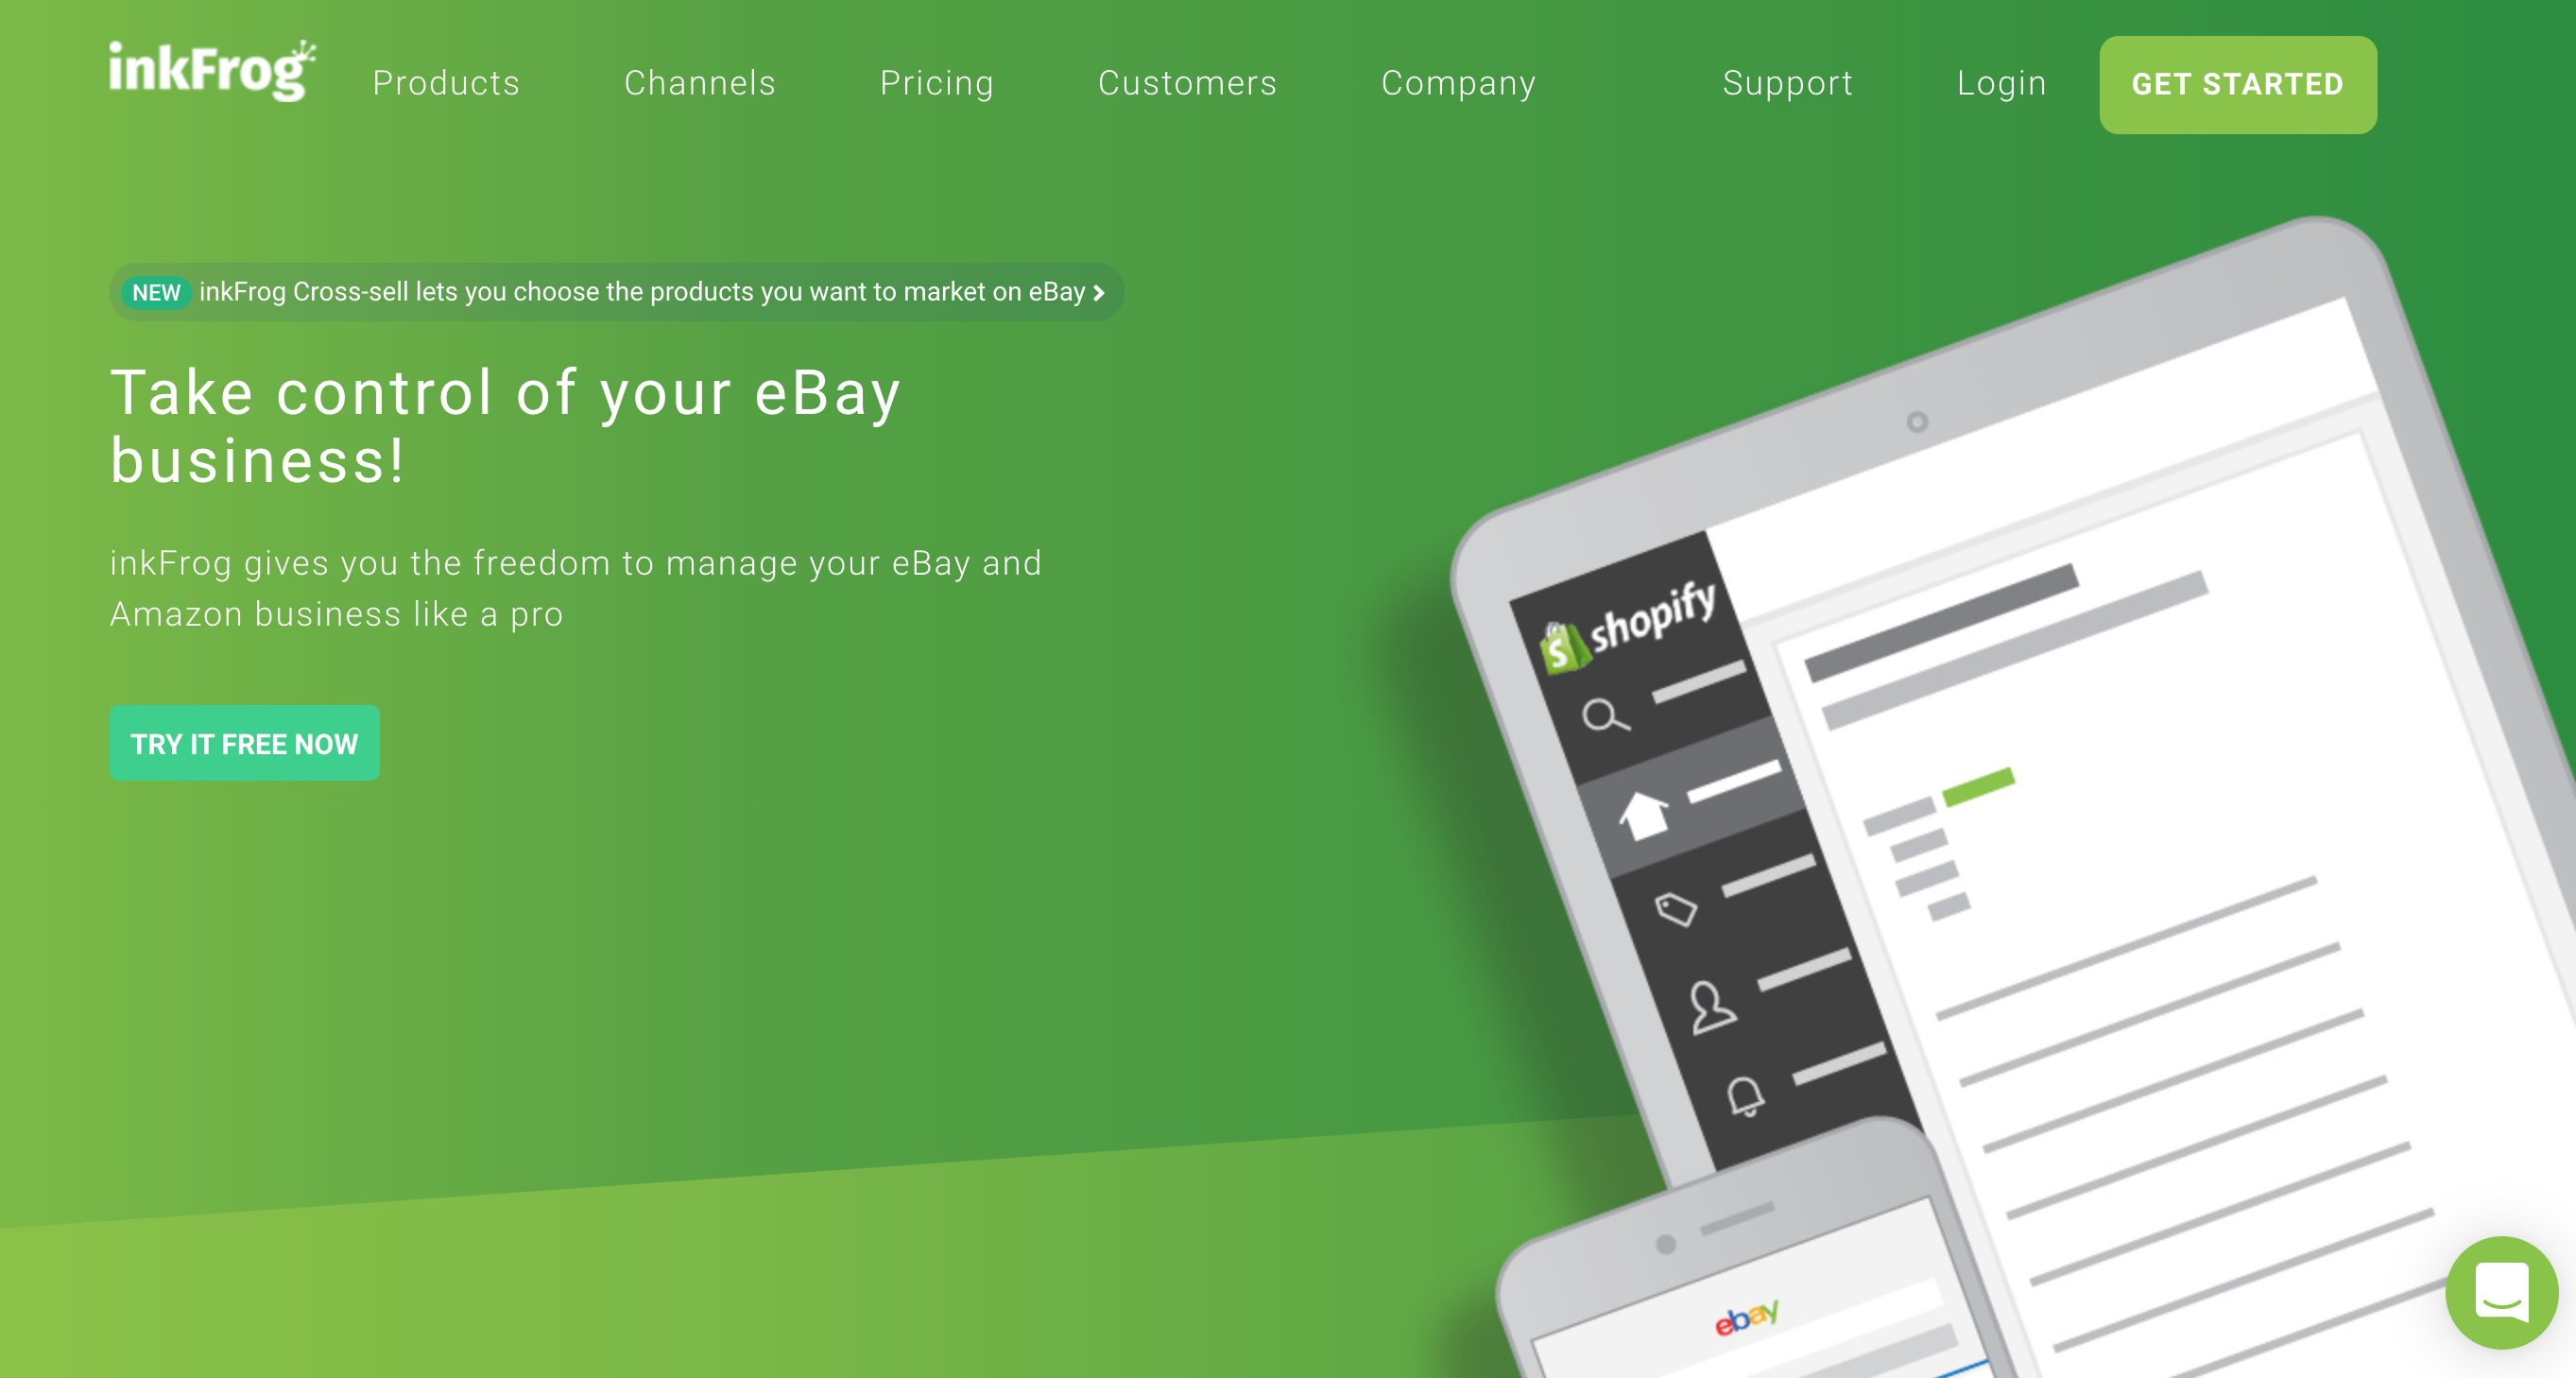 inkFrog - eBay and Amazon Listing Software with free eBay templates